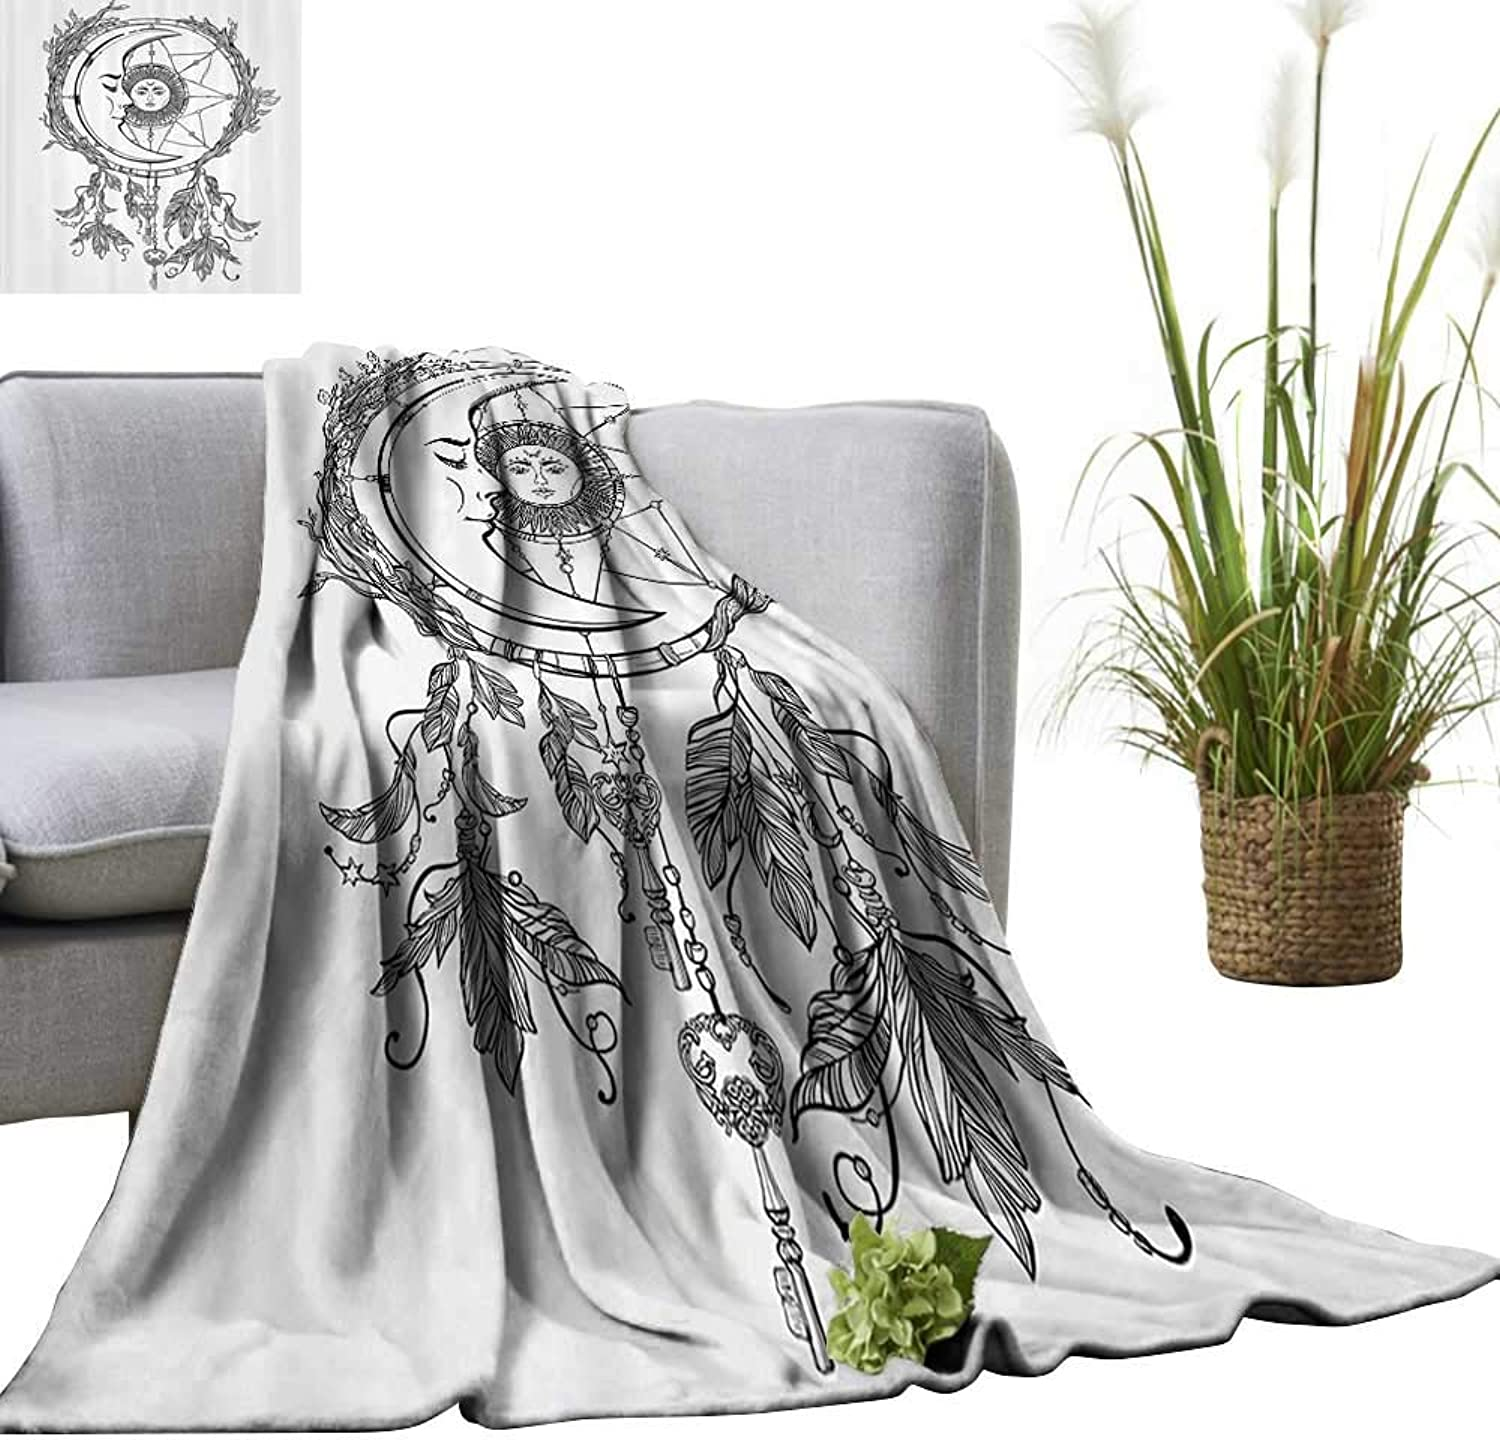 YOYI Super Soft Blanket mTribal Dreamcatcher Feathers with Sun and Mo Inside Cosmos Artsy Bedsure Flannel 60 x70